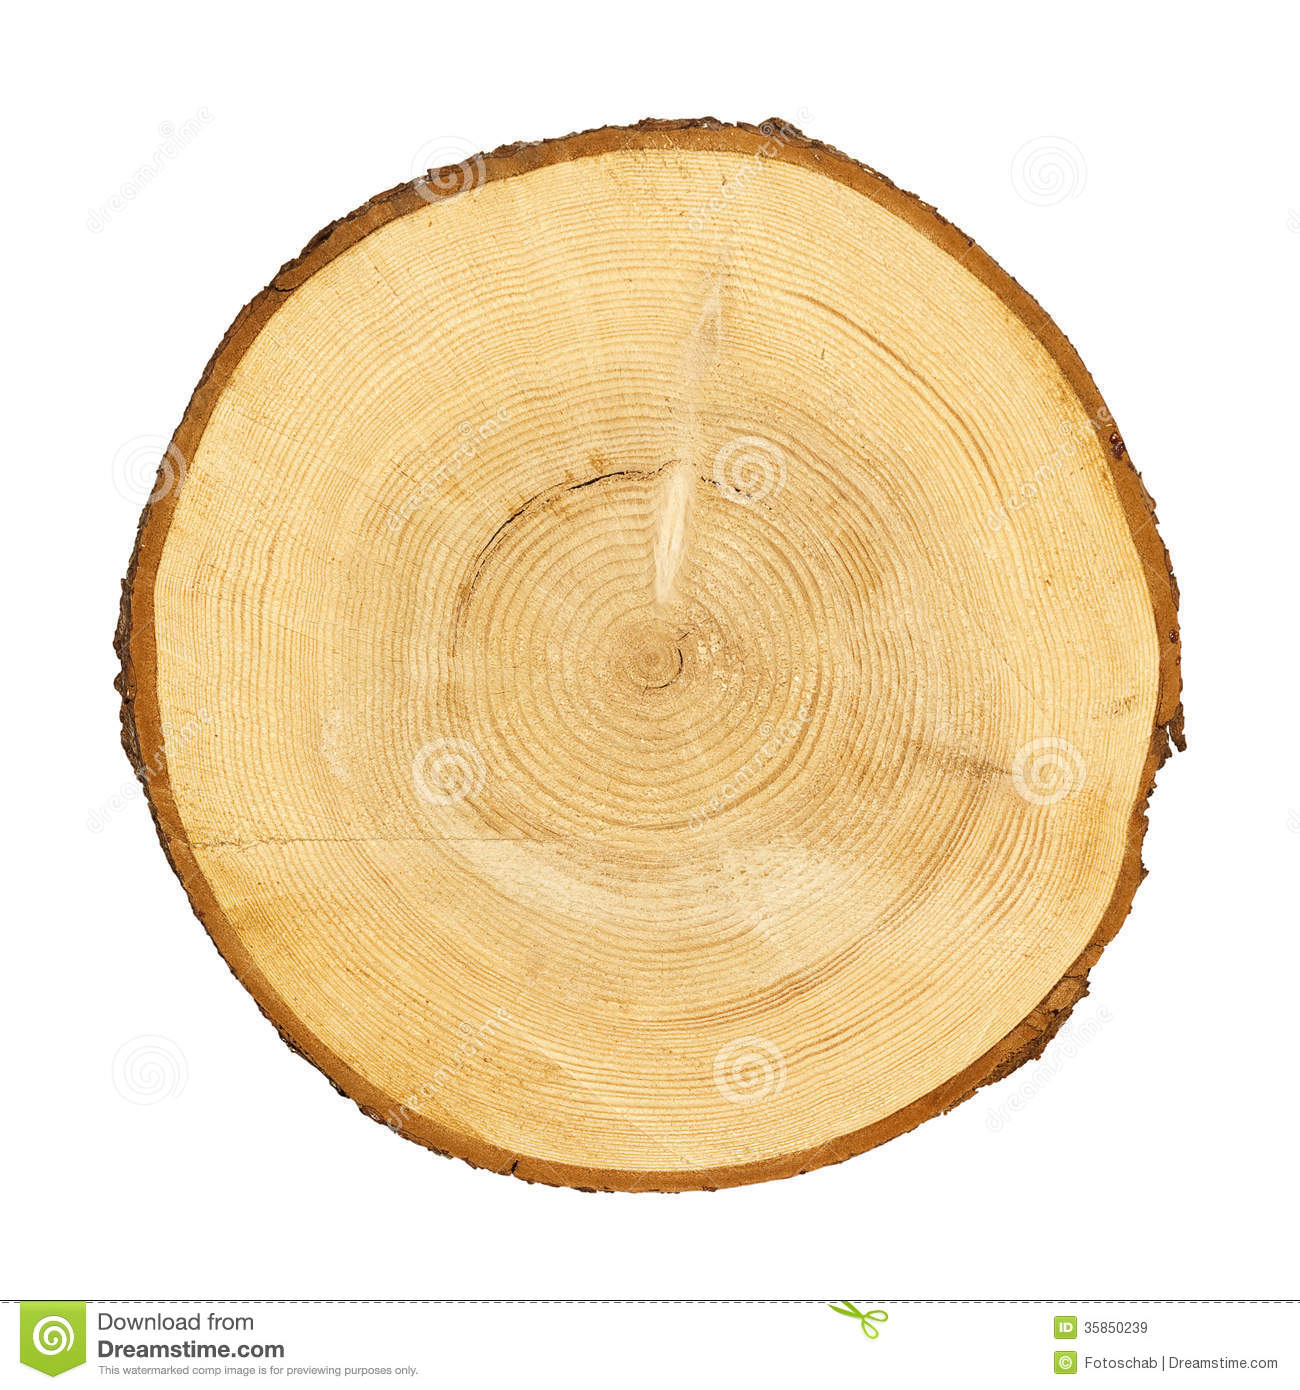 Tree trunk cross section. CLIPPING PATH